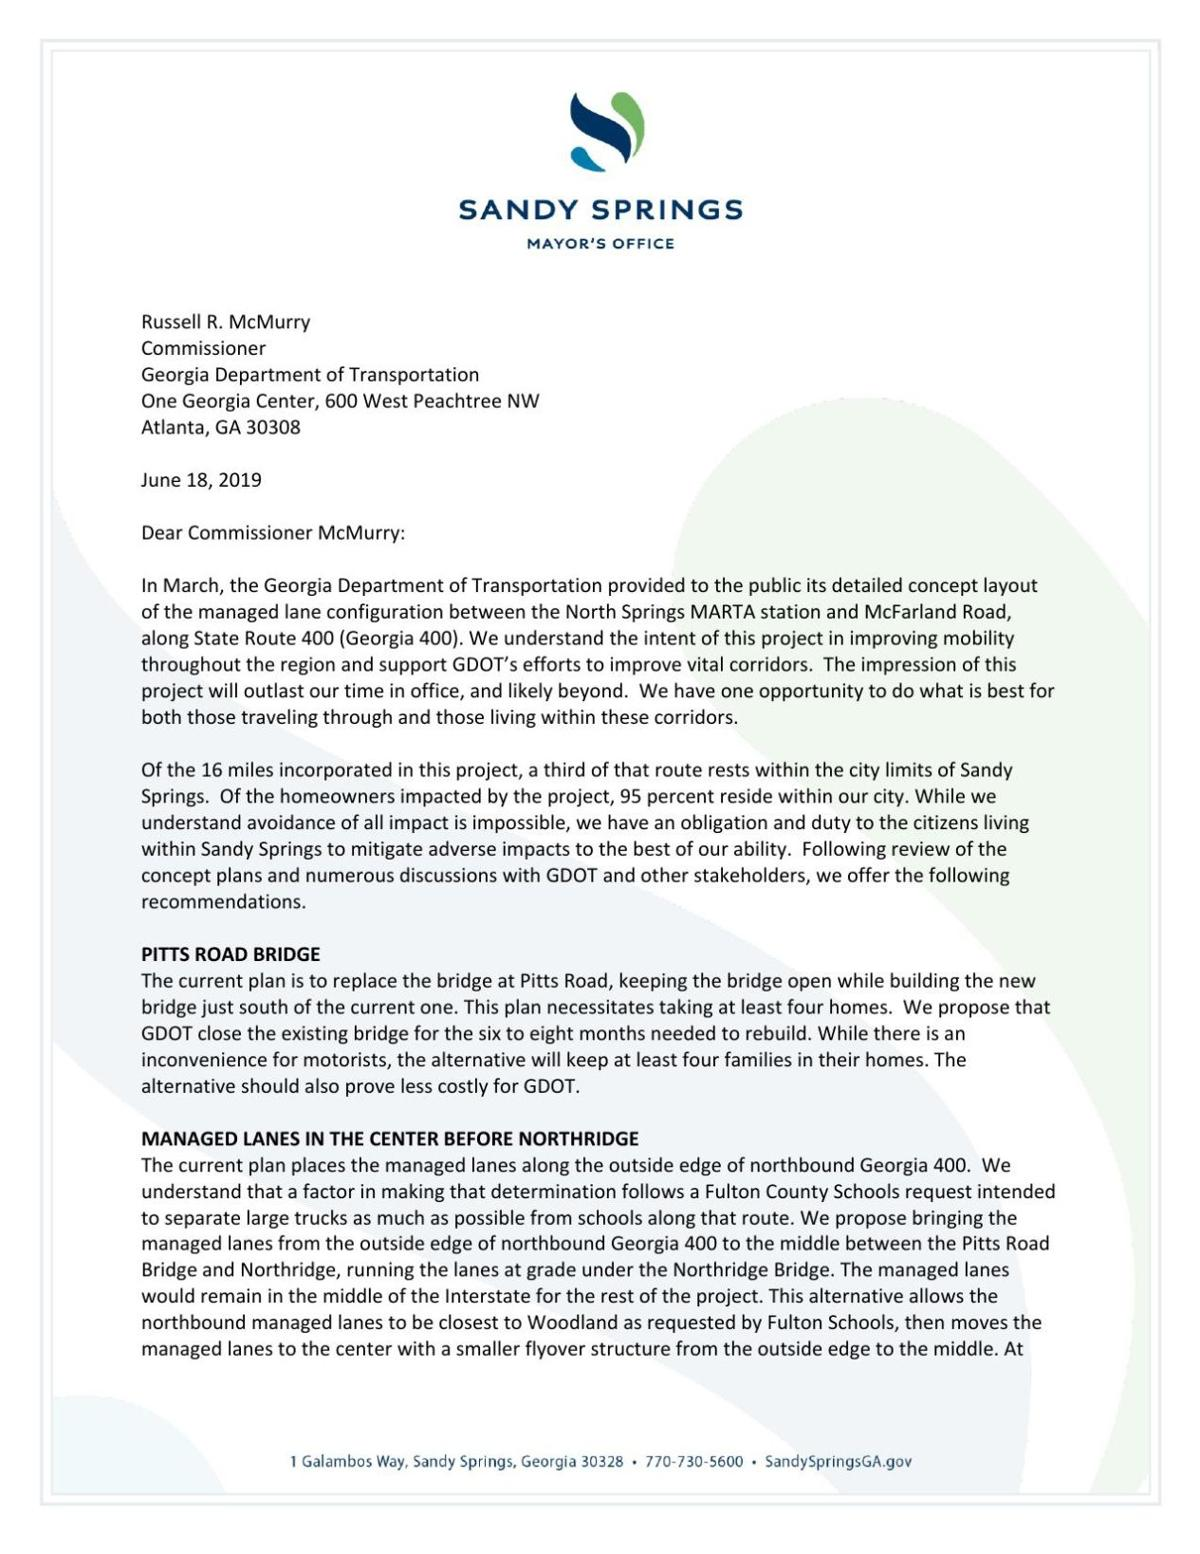 John Paulson's letter to GDOT's Russell McMurry